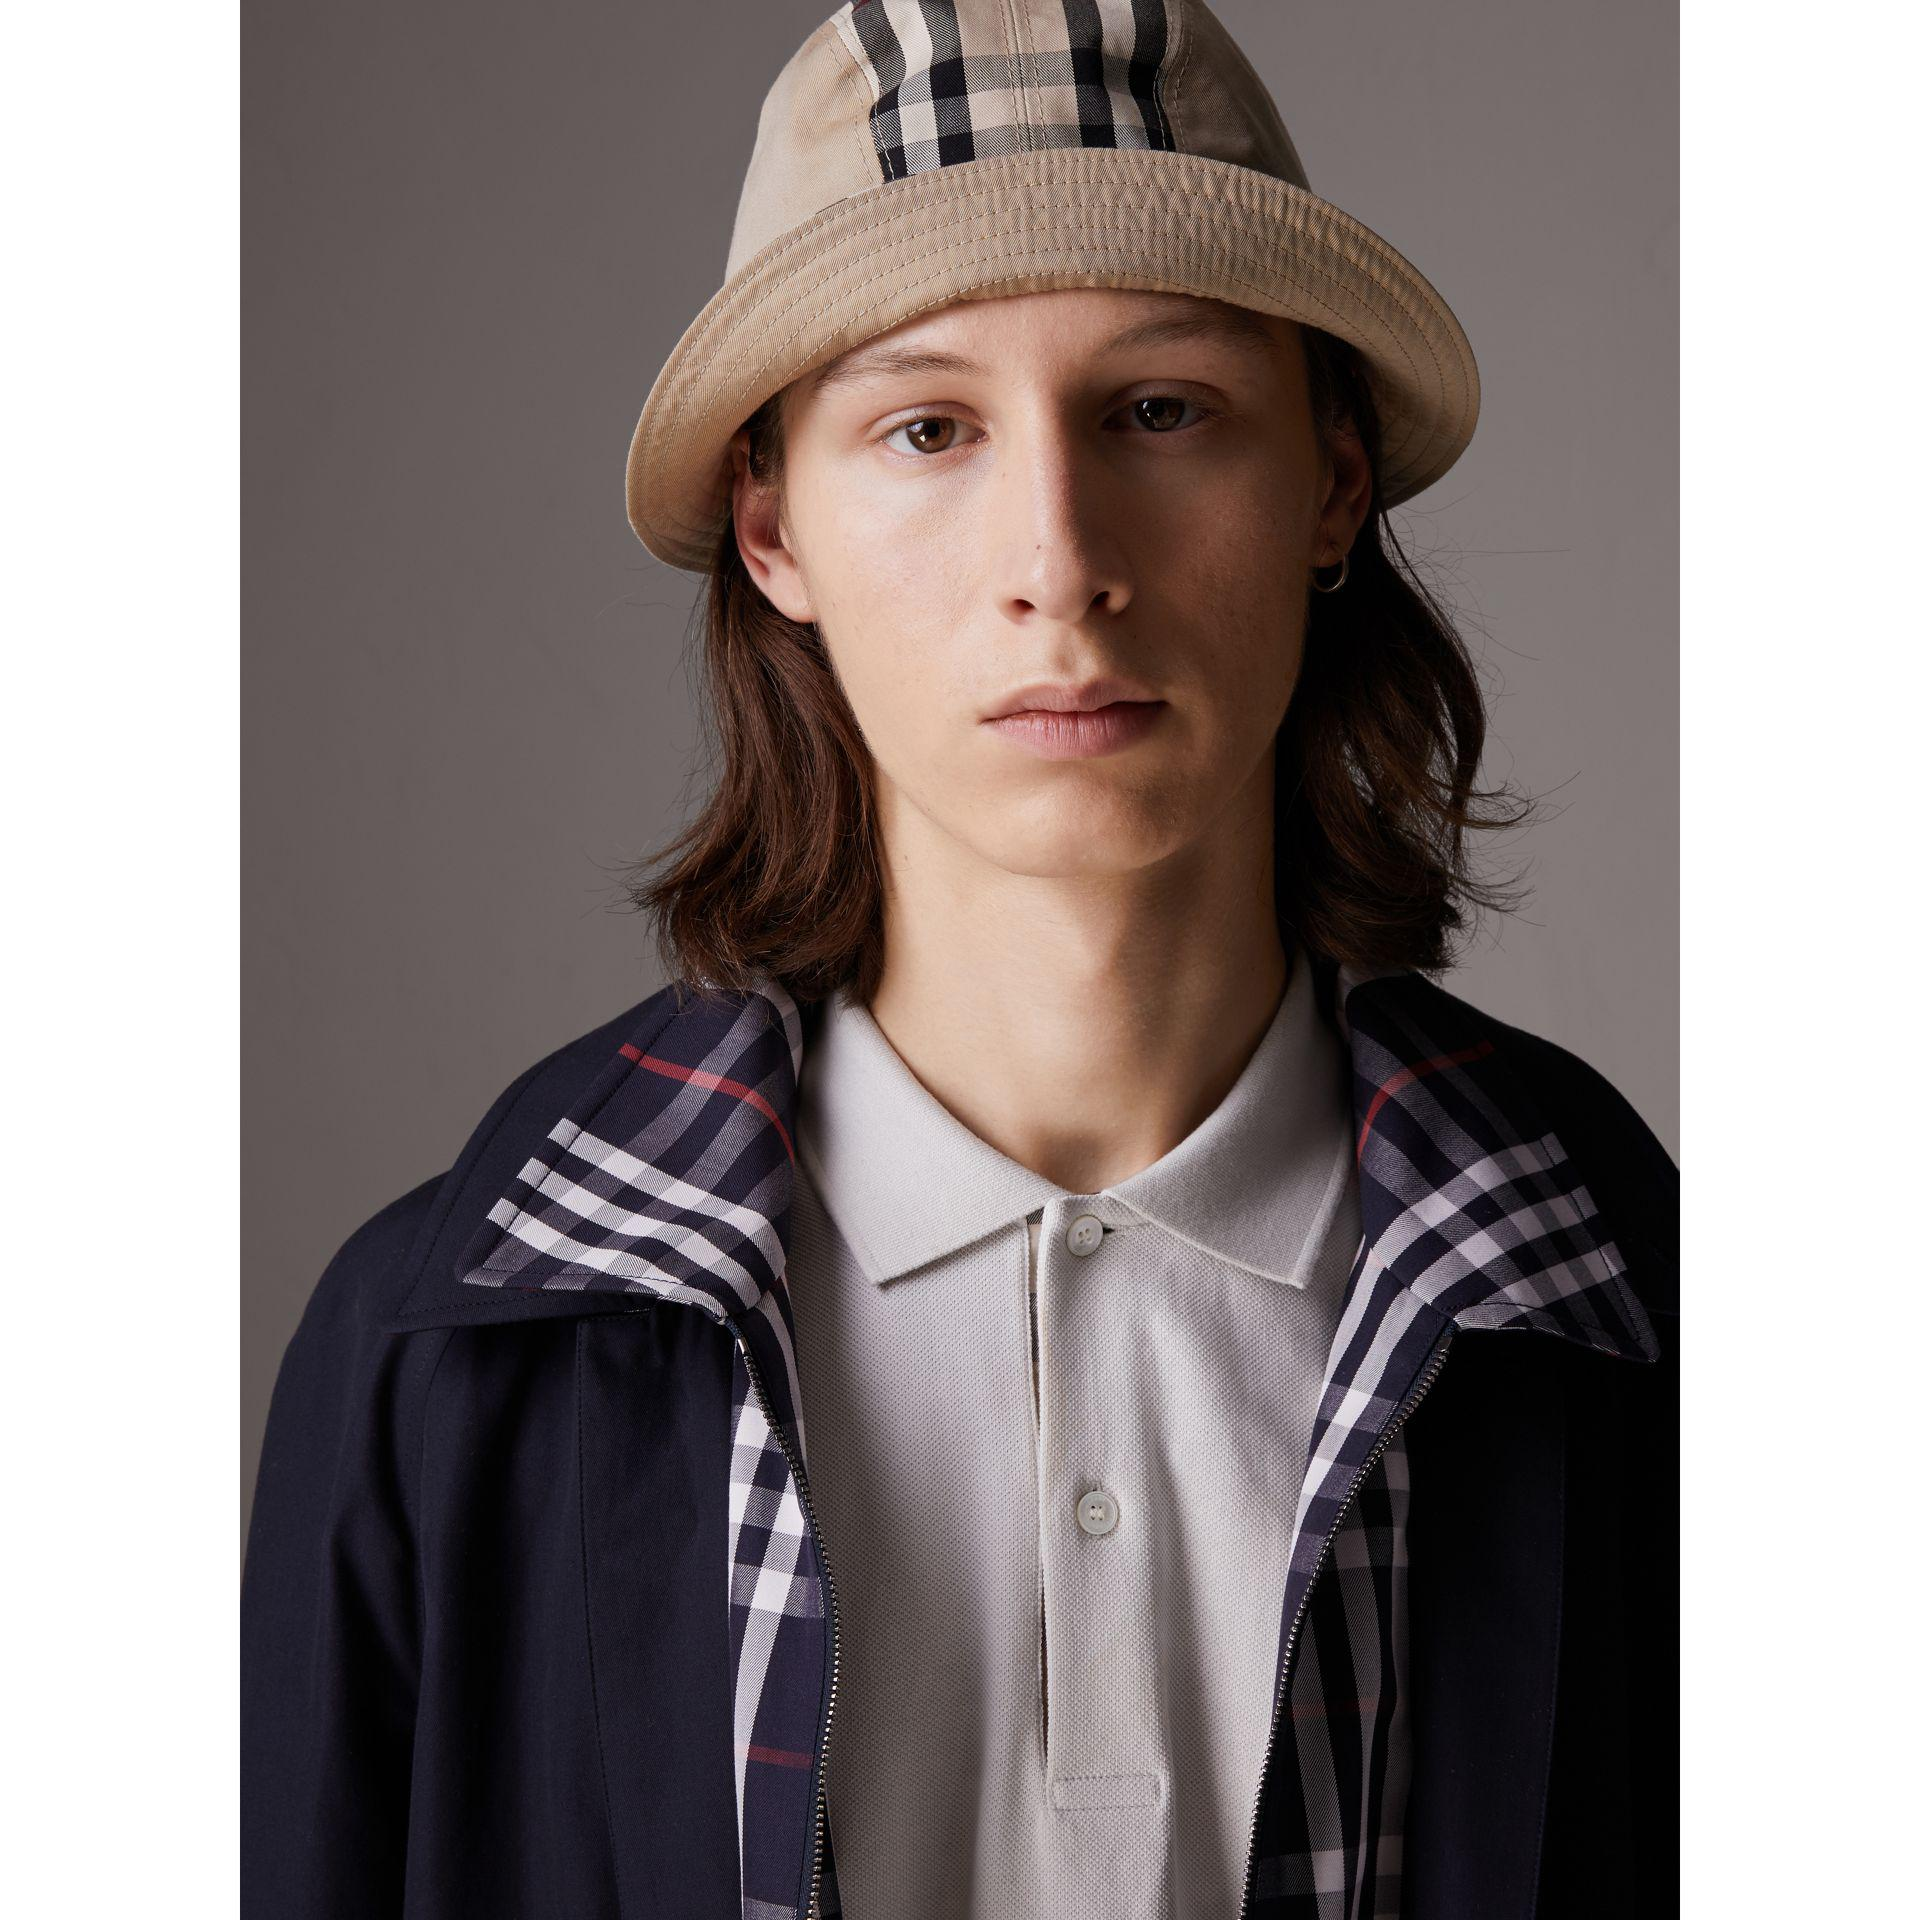 d2de4ddc42c Lyst - Burberry Gosha X Bucket Hat for Men